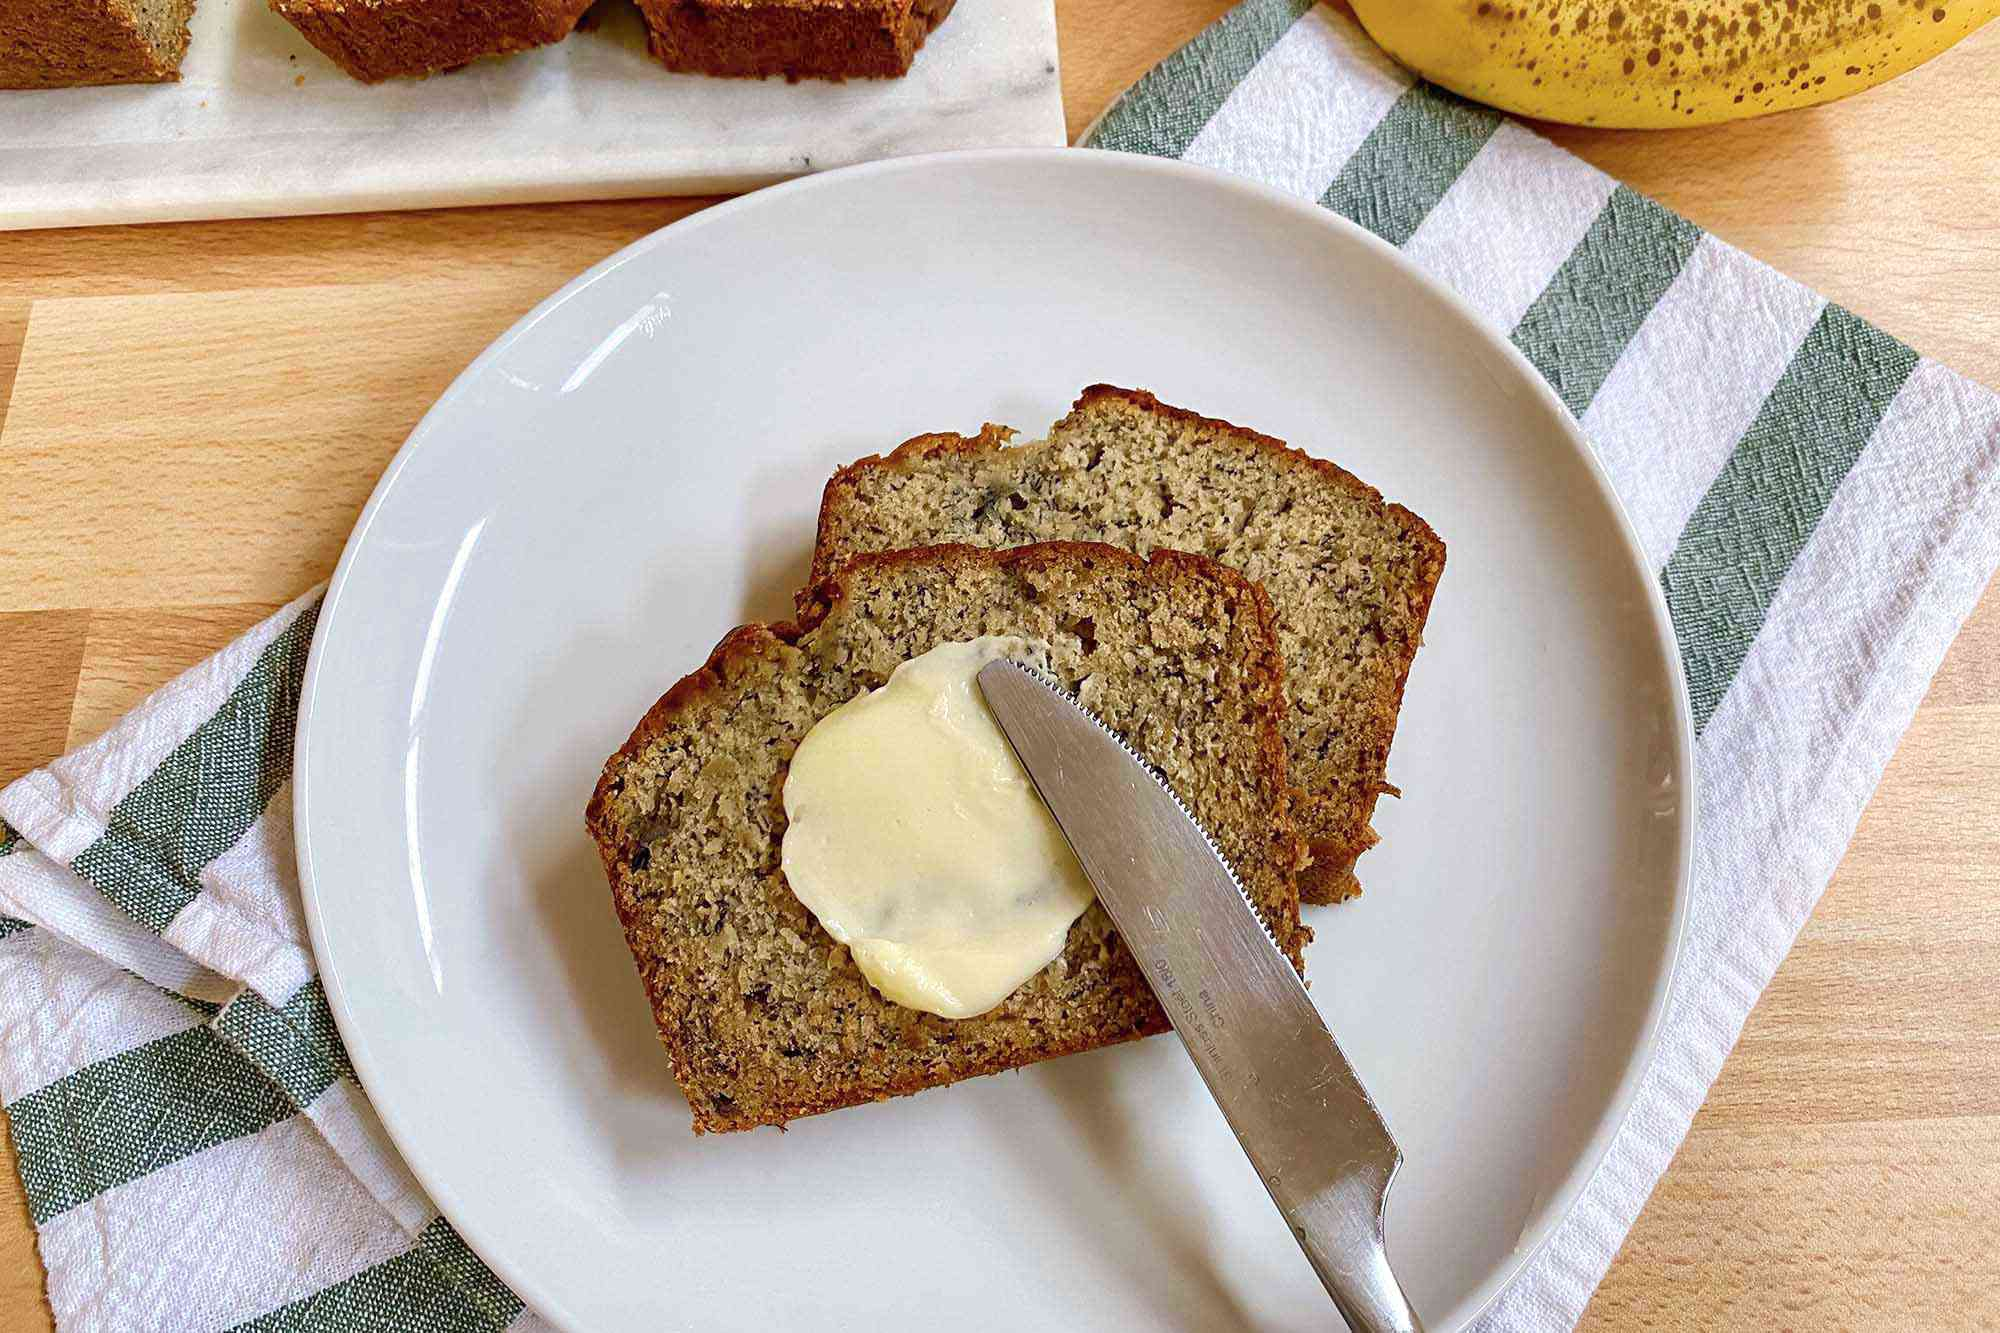 Two slices of easy gluten free banana bread with a pat of butter being spread on top.